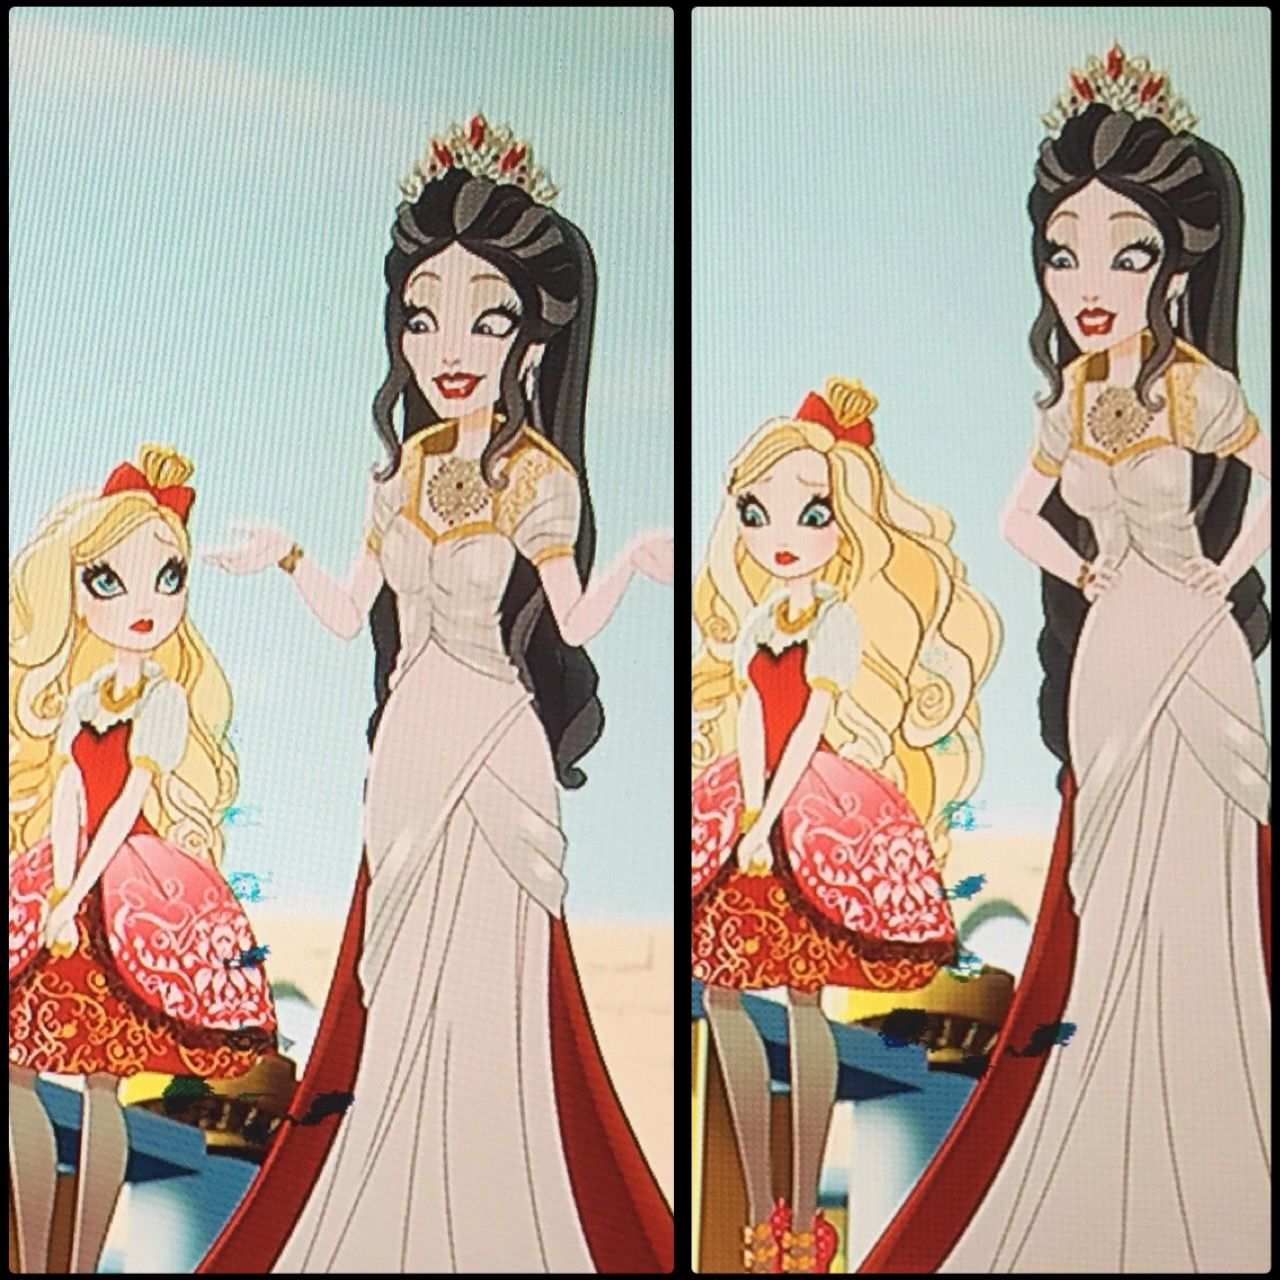 Apple White and Snow White | Ever after high | Pinterest ...